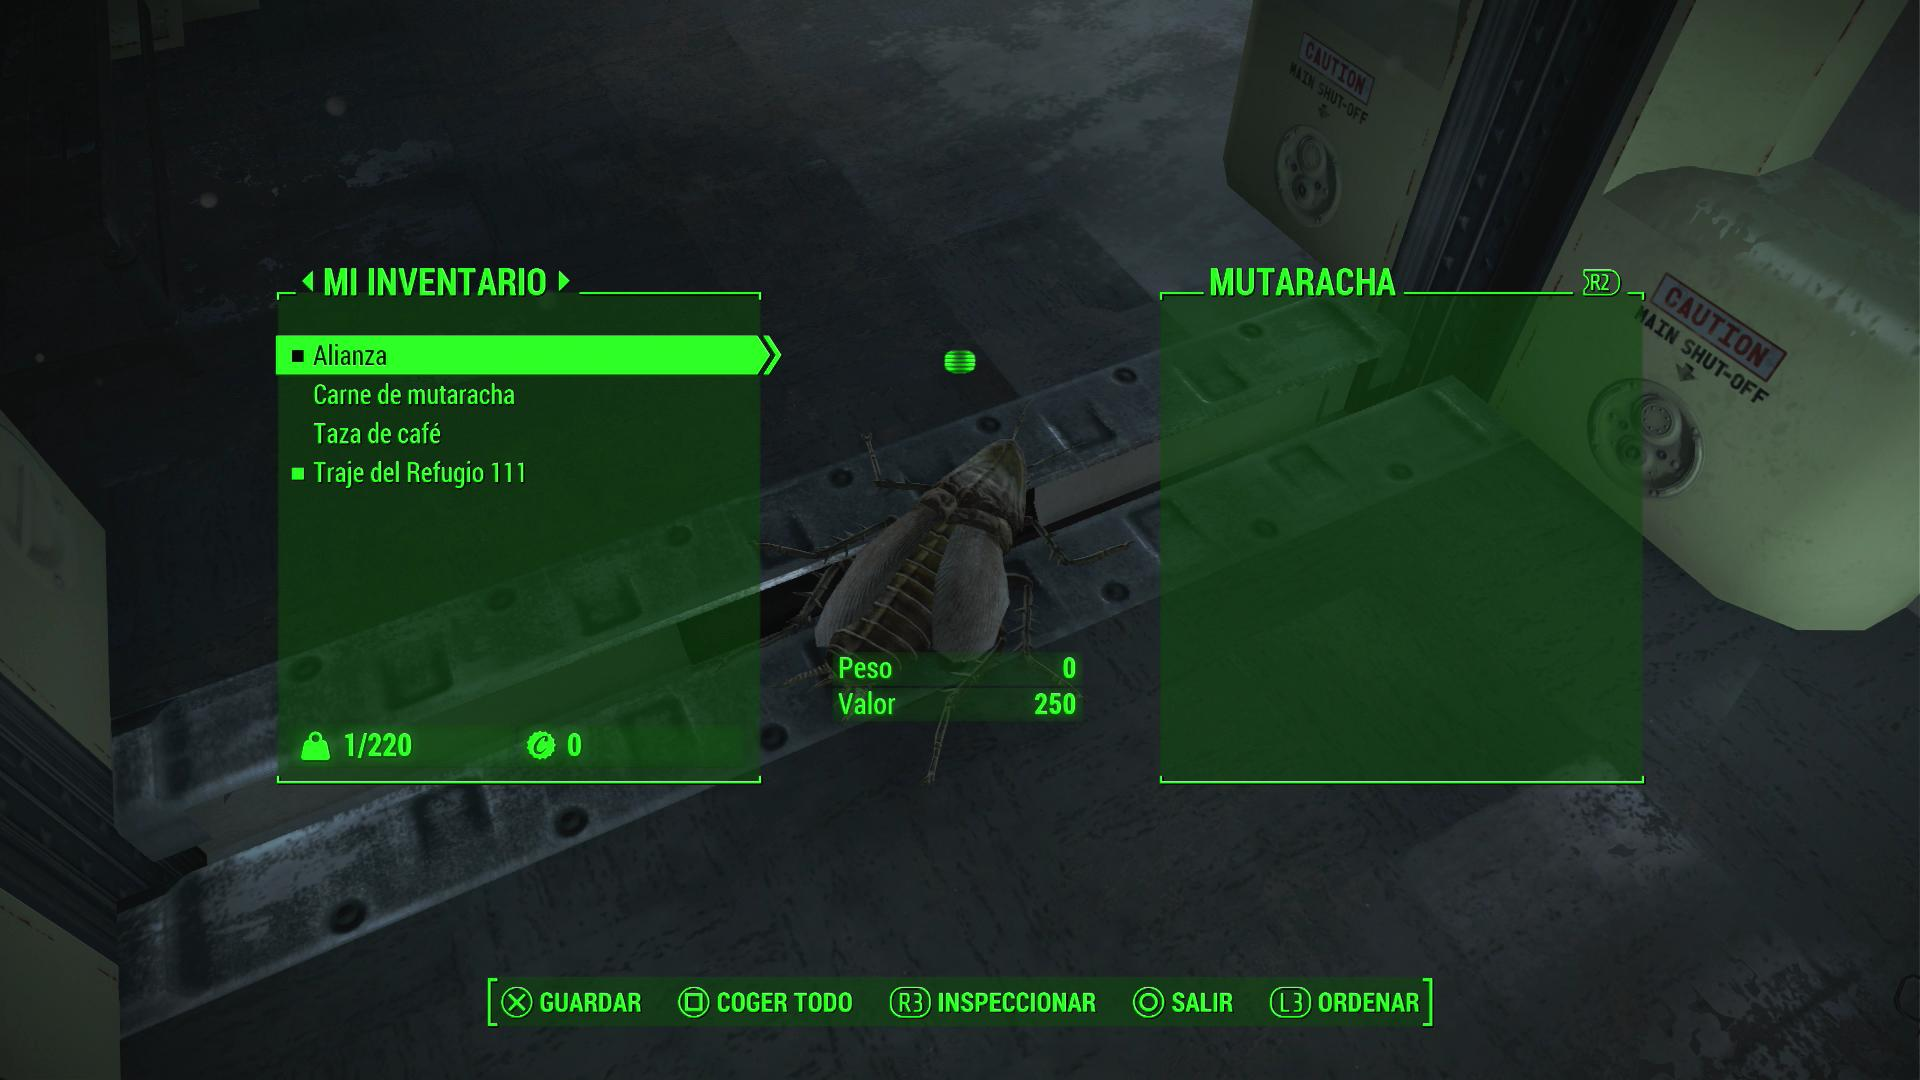 Fallout 4 Gameplay Videos and Screenshots Leaked Online